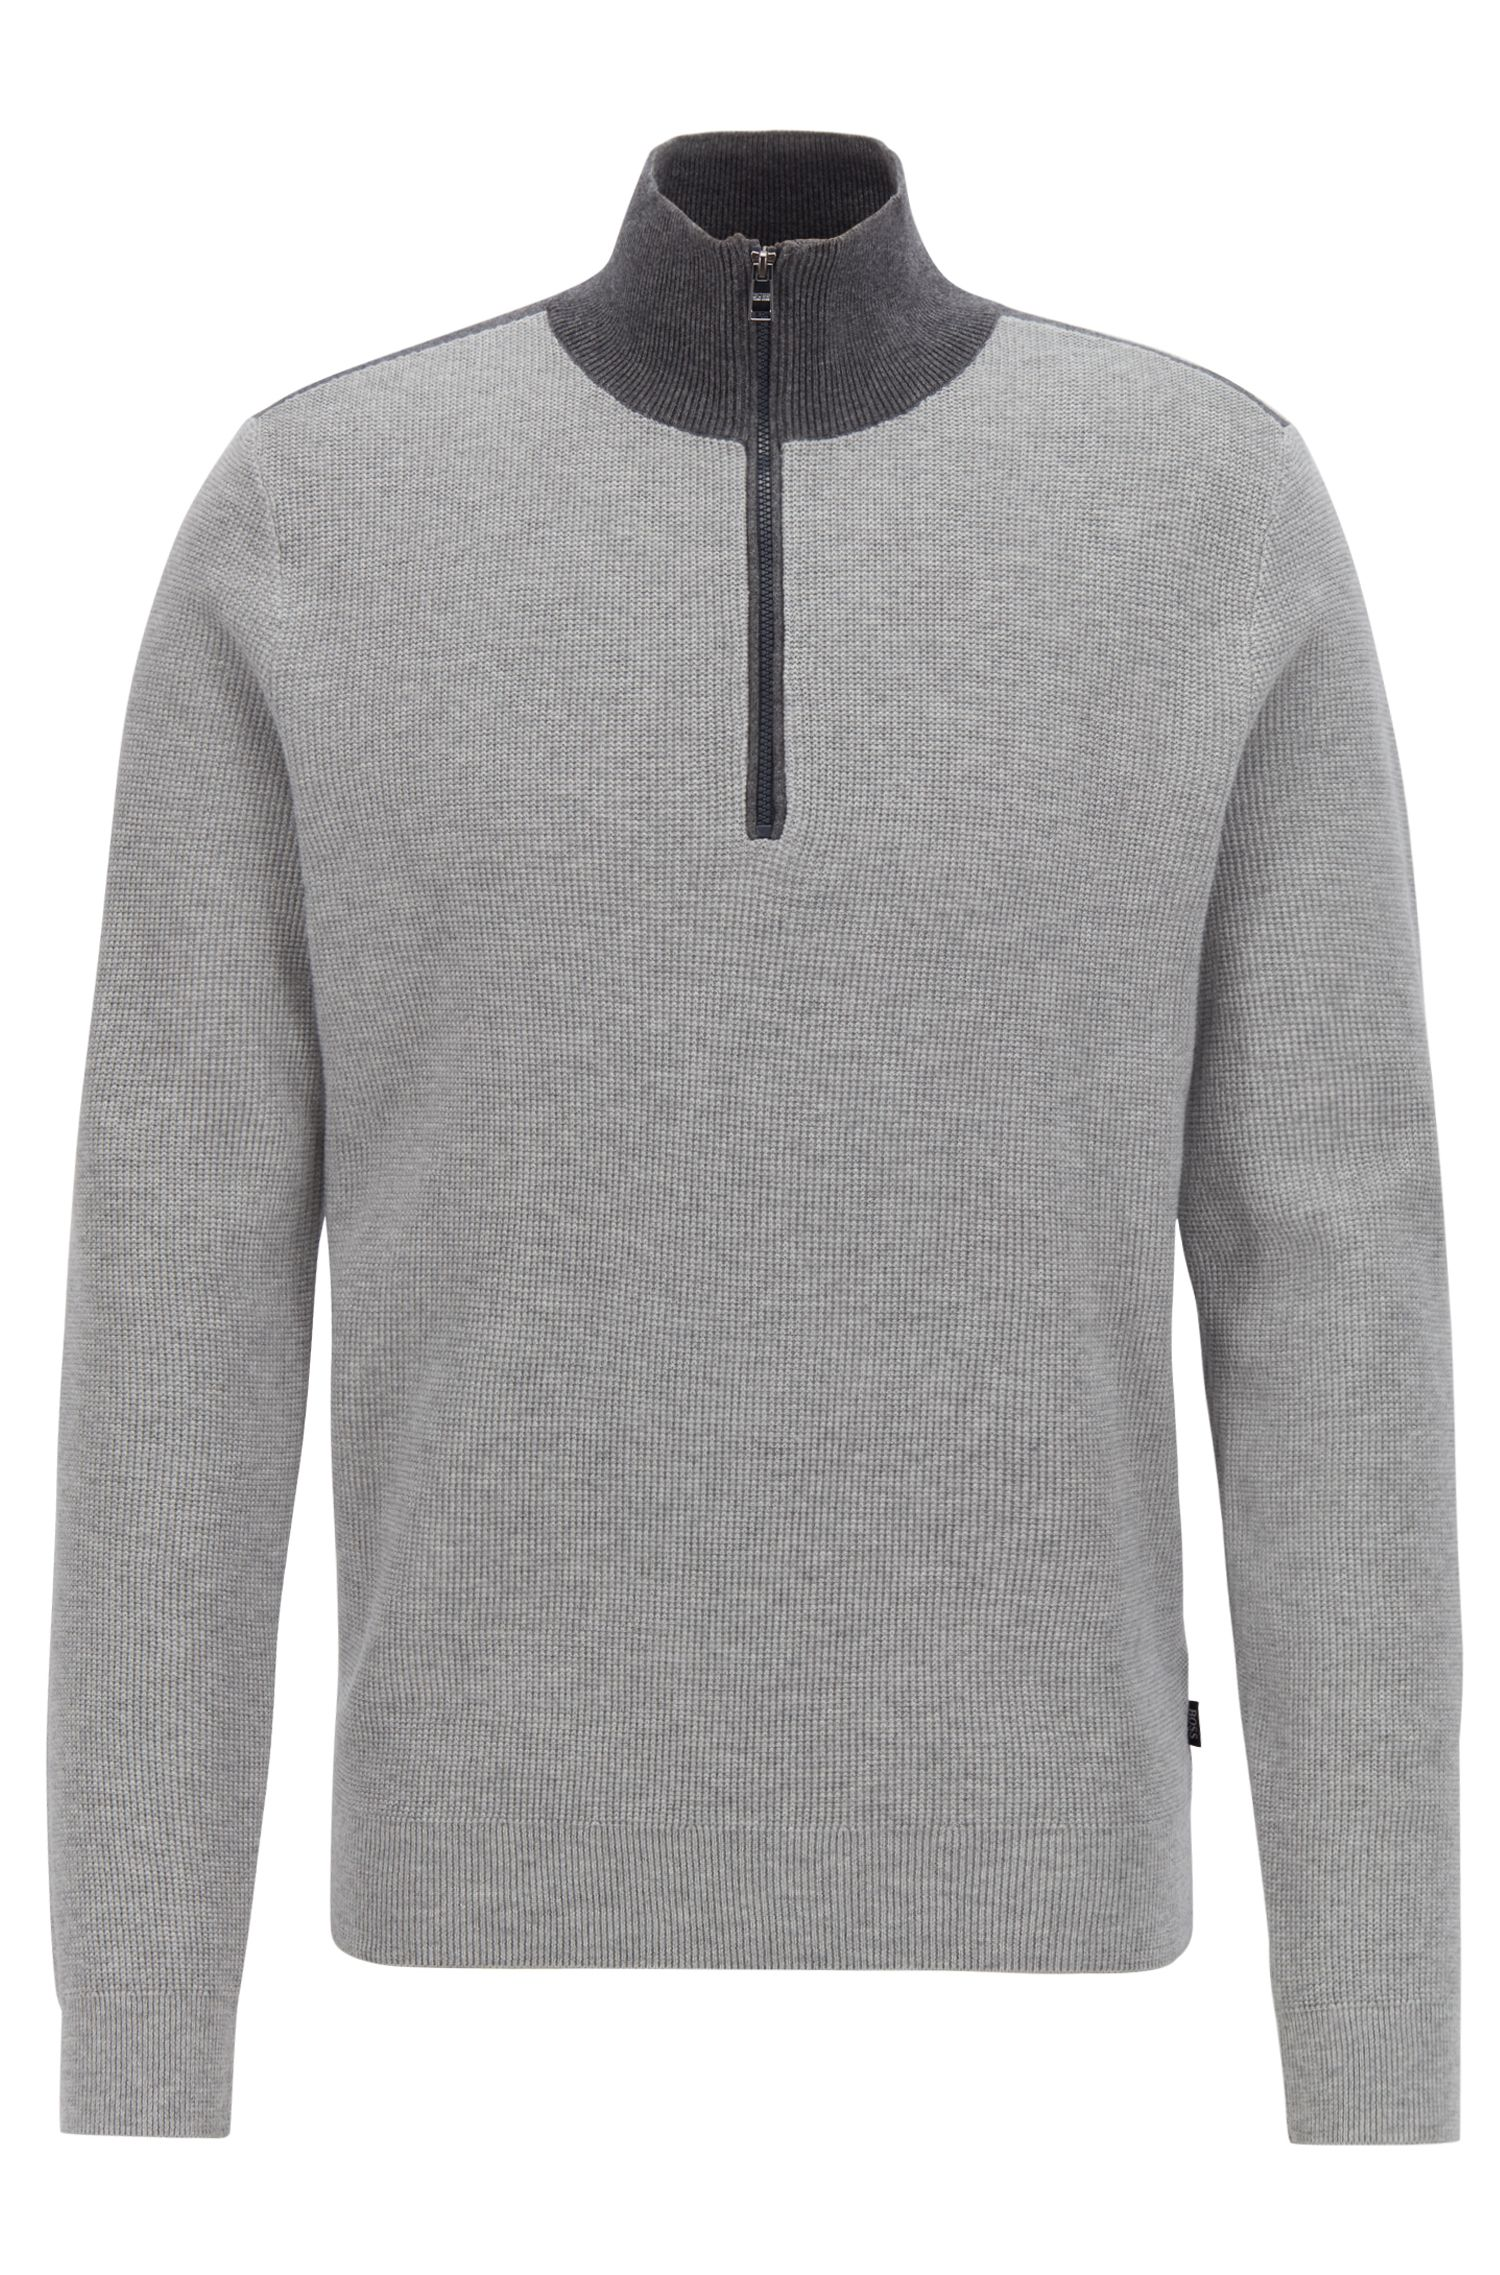 Micro-structure sweater with zip neck and colour contrasts, Grey